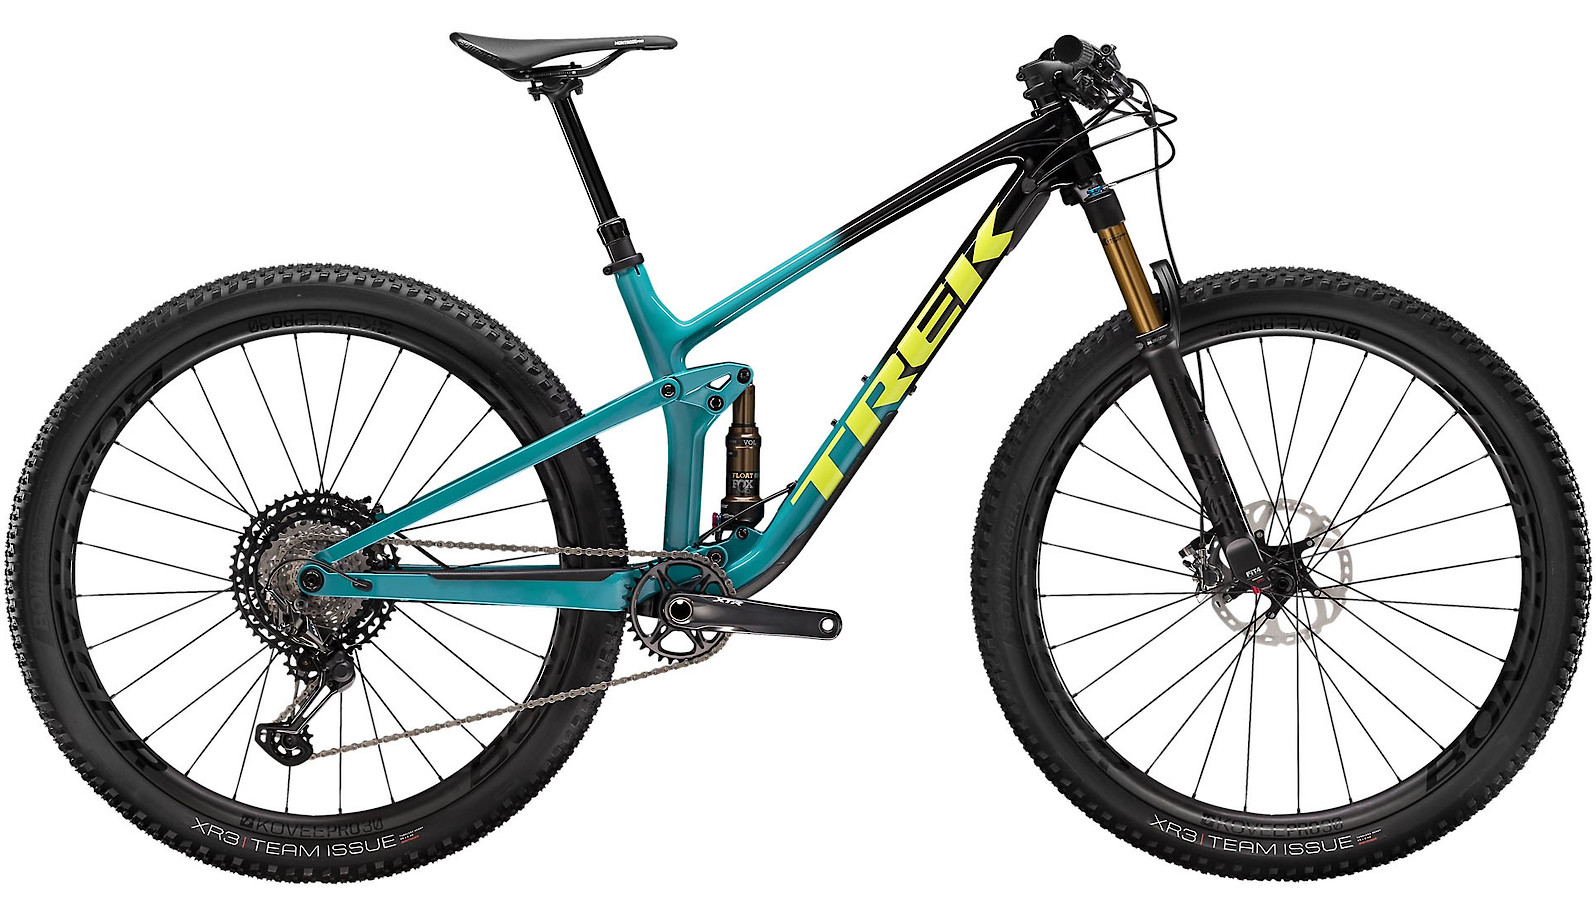 2020 Trek Top Fuel 9.9 XTR Trek Black to Teal Fade